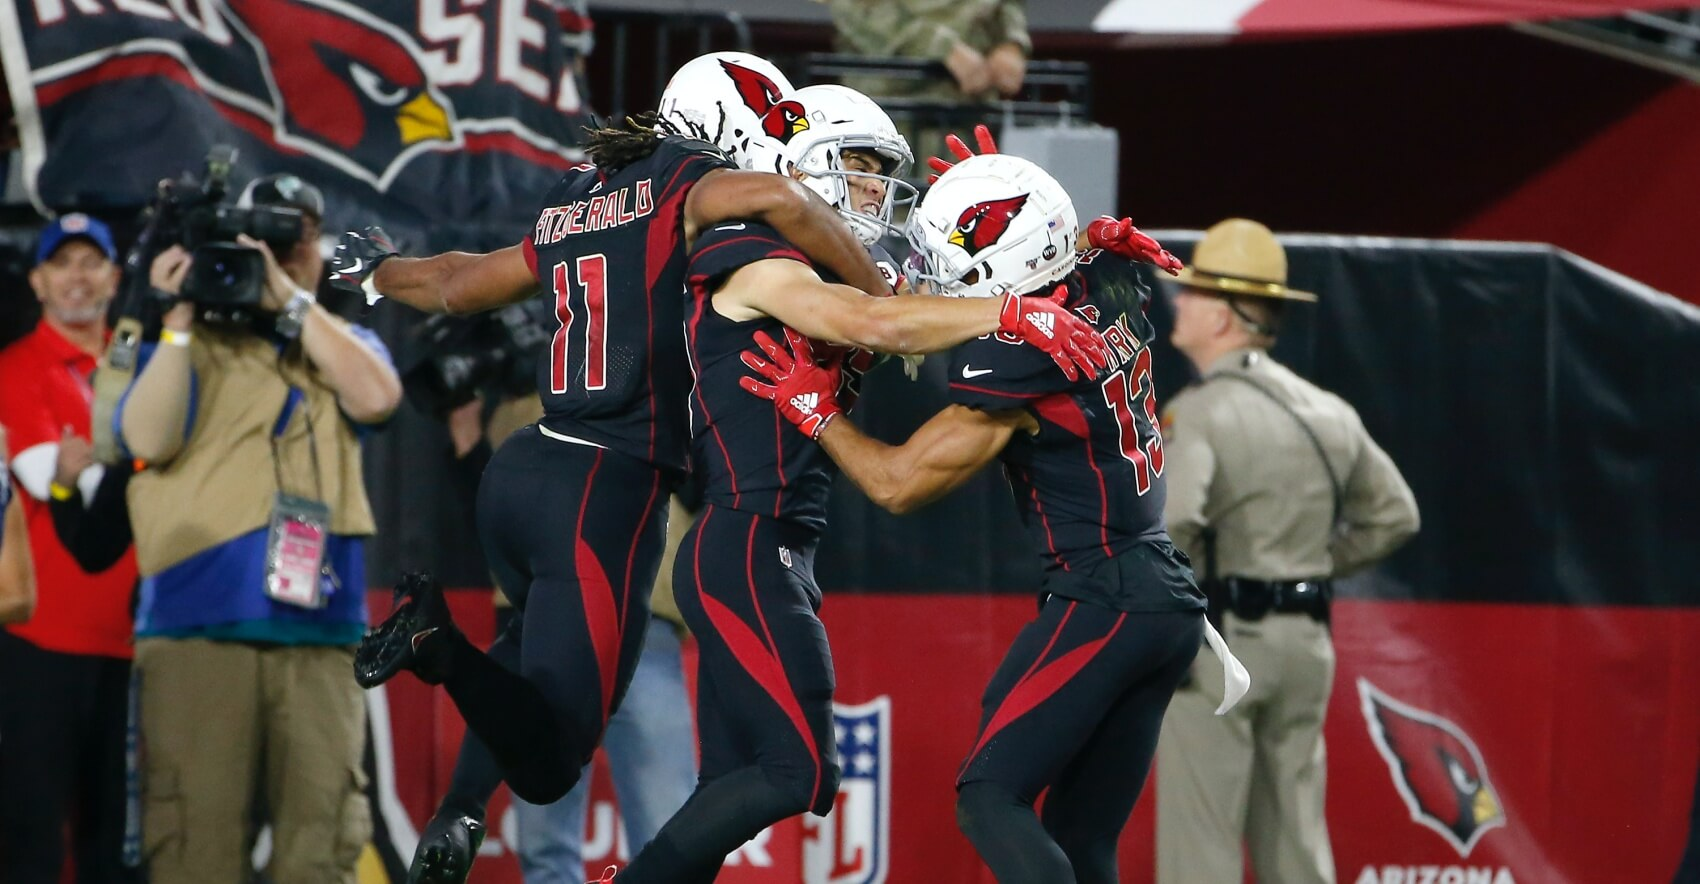 Commissioner Guide: PPR Leagues Should Require Three Starting WRs (Fantasy Football)